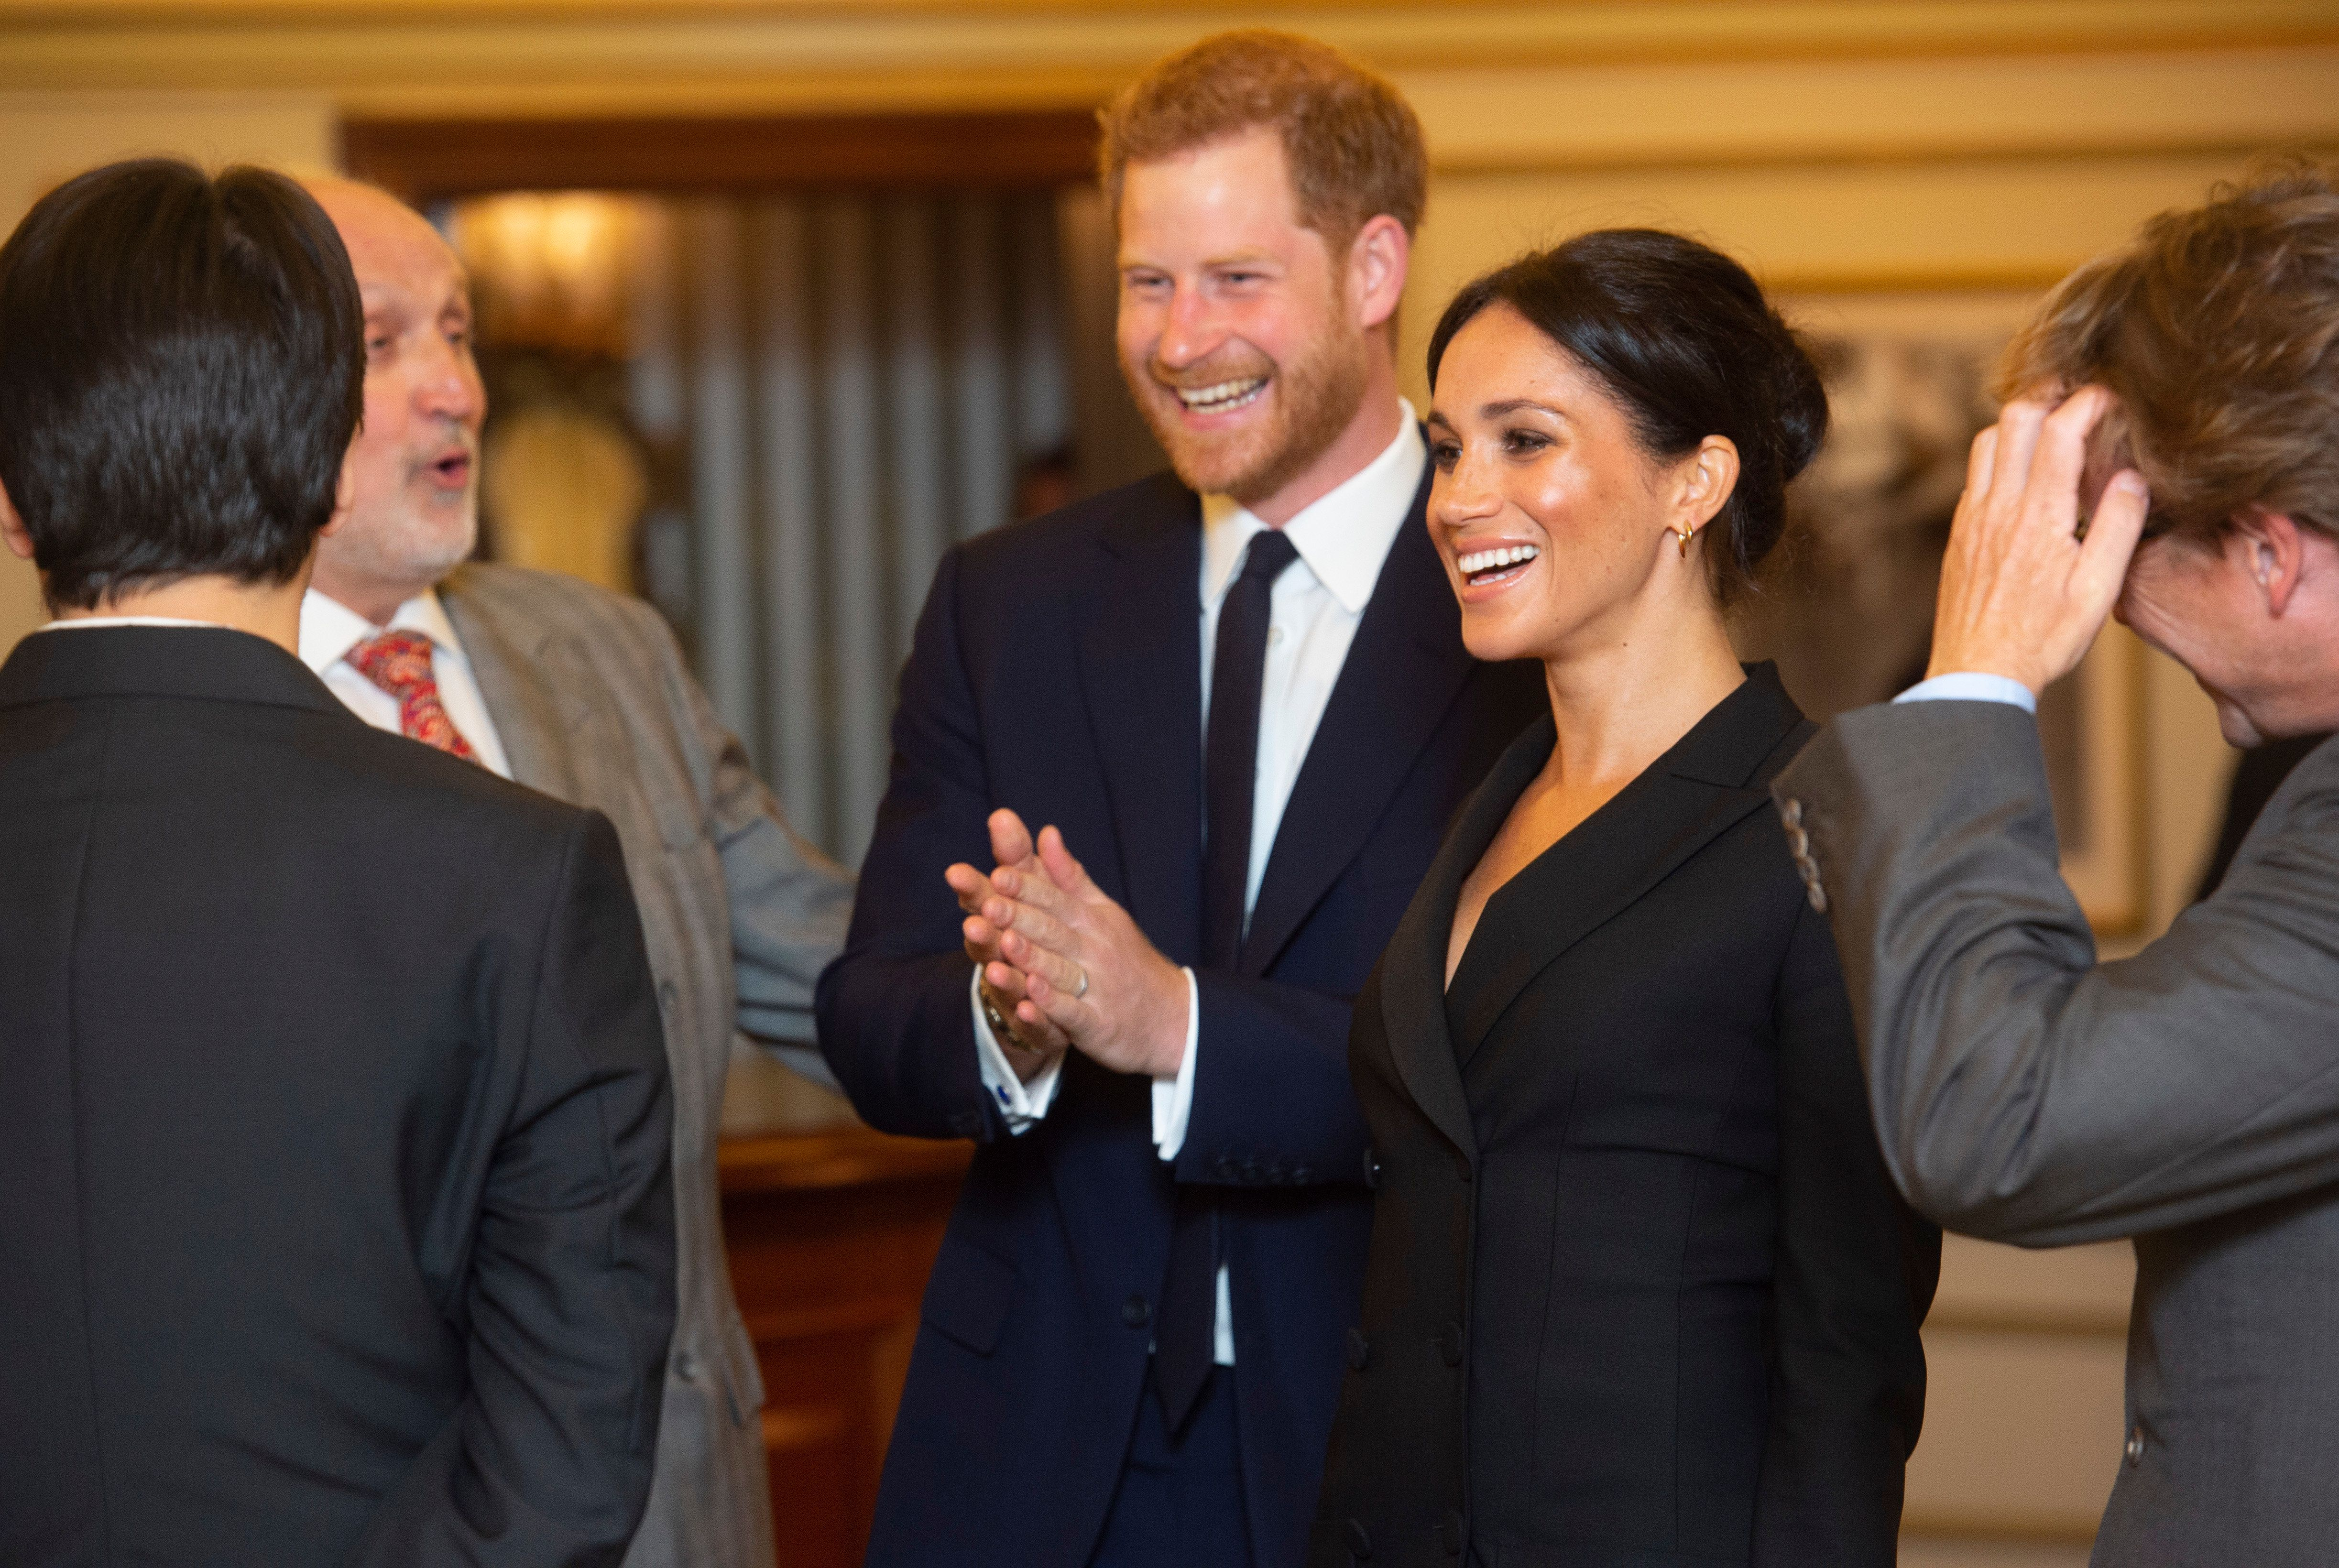 LONDON, ENGLAND - AUGUST 29: Prince William, Duke of Sussex and Meghan, Duchess of Sussex speak with writer Lin Manuel Miranda and others from Sentibale as they attend a gala performance of 'Hamilton' in support of Sentebale at Victoria Palace Theatre on August 29, 2018 in London, England. (Photo by Dan Charity - WPA Pool/Getty Images)